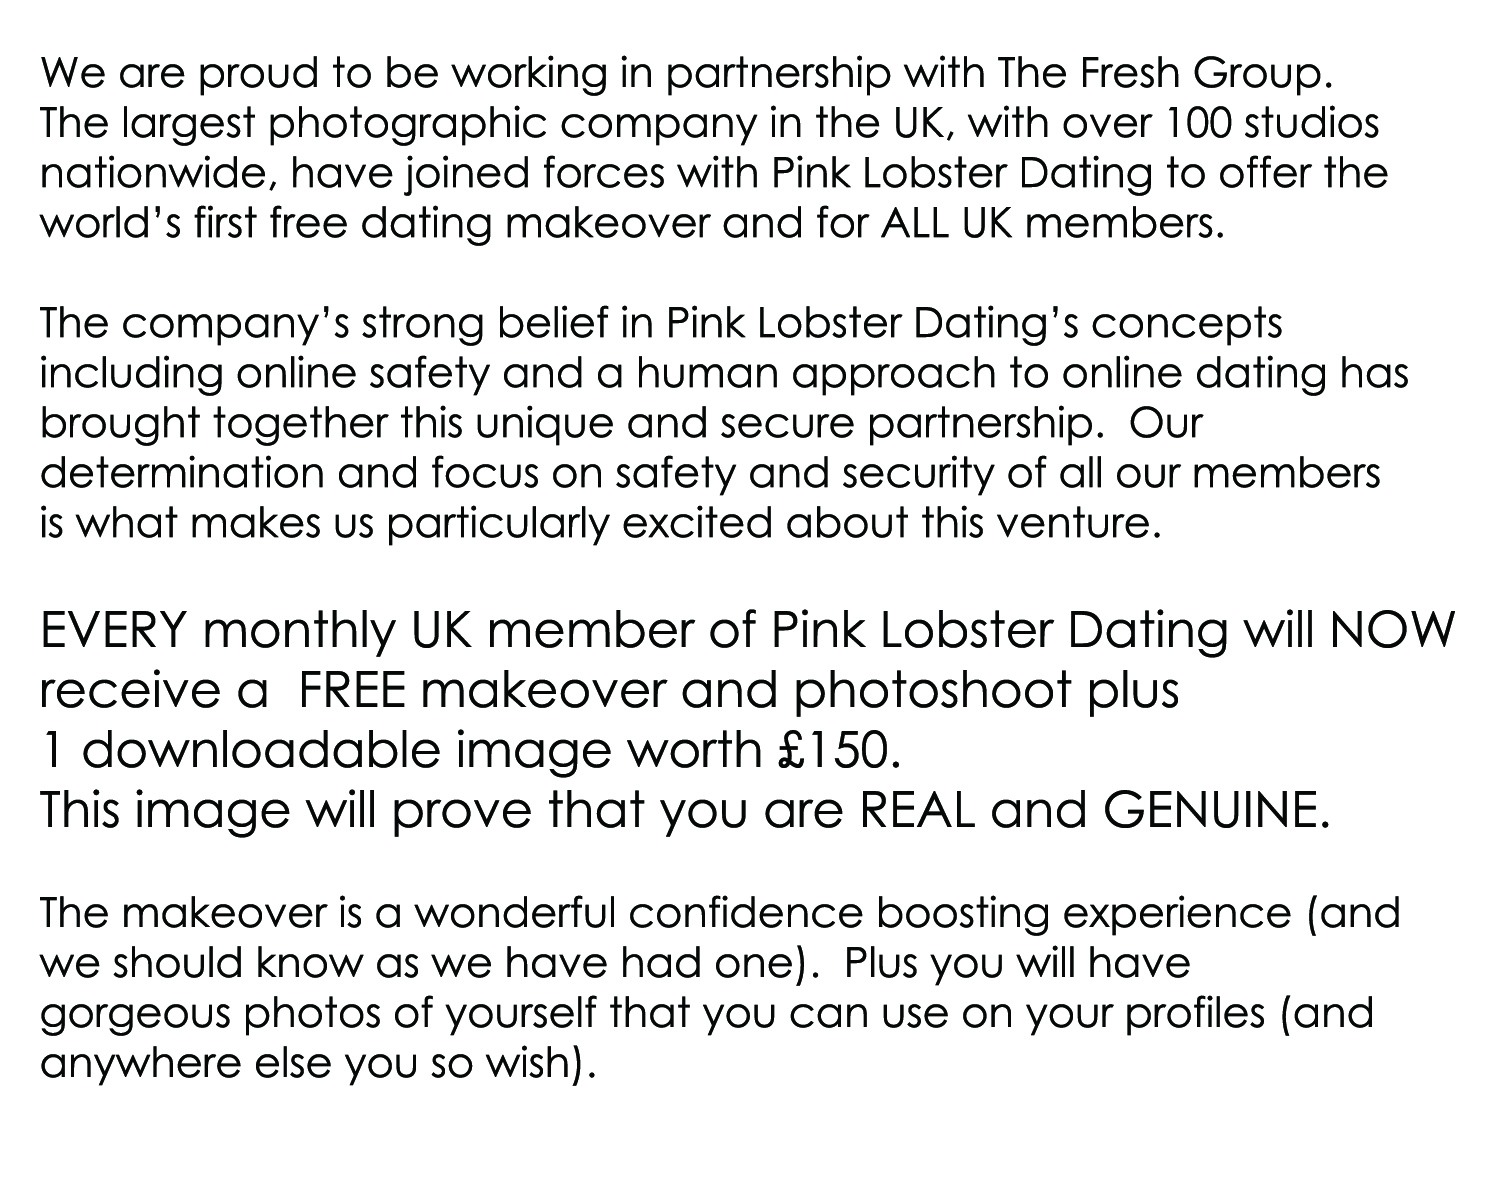 We are proud to be working in partnership with The Fresh Group.   The largest photographic company in the UK, with over 100 studios  nationwide, have joined forces with Pink Lobster Dating to offer the  world's first free dating makeover and for ALL UK members.   The company's strong belief in Pink Lobster Dating's concepts  including online safety and a human approach to online dating has brought together this unique and secure partnership.  Our  determination and focus on safety and security of all our members  is what makes us particularly excited about this venture.  Every single UK member of Pink Lobster Dating will NOW  receive a  FREE makeover and photoshoot plus  1 downloadable image worth £150.  This image will prove that you are REAL and GENUINE.  The makeover is a wonderful confidence boosting experience (and we should know as we have all had one).  Plus you will have  gorgeous photos of yourself that you can use on your profiles (and anywhere else you so wish).